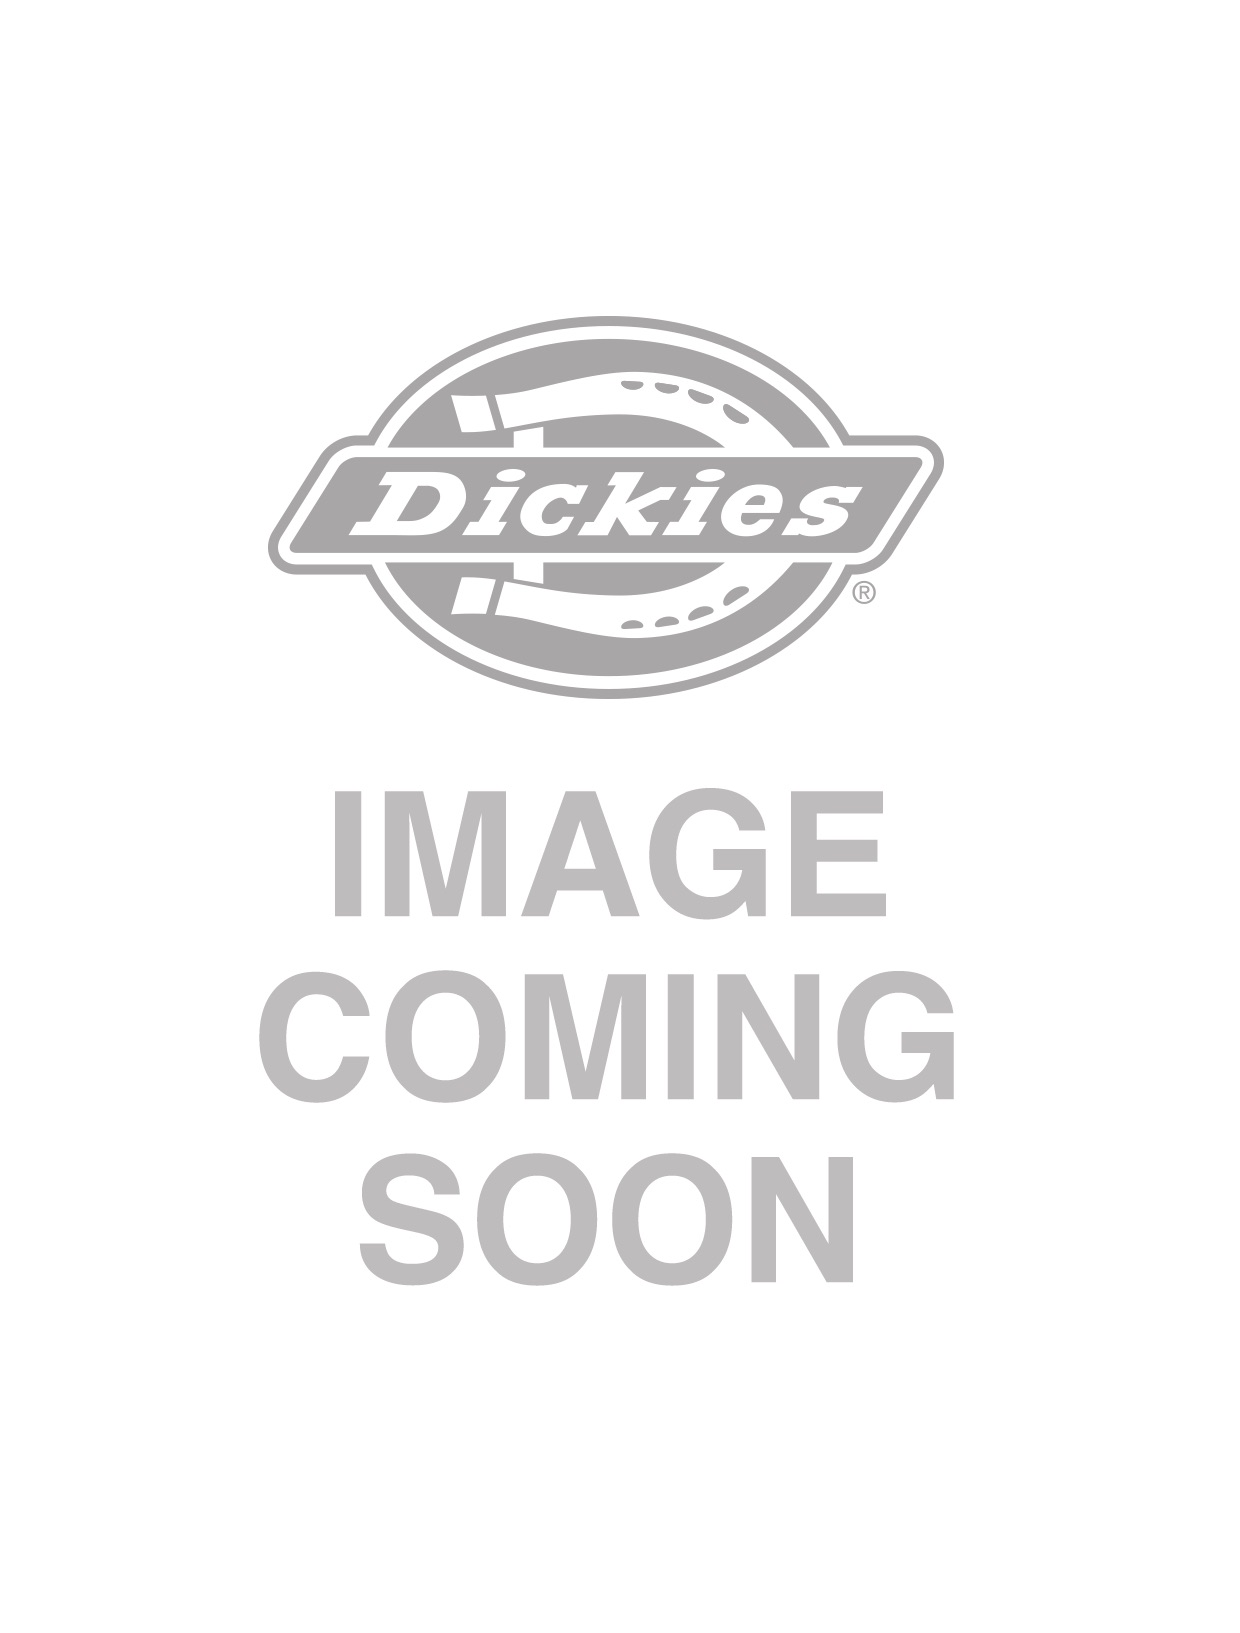 Dickies Hardyville T-Shirt